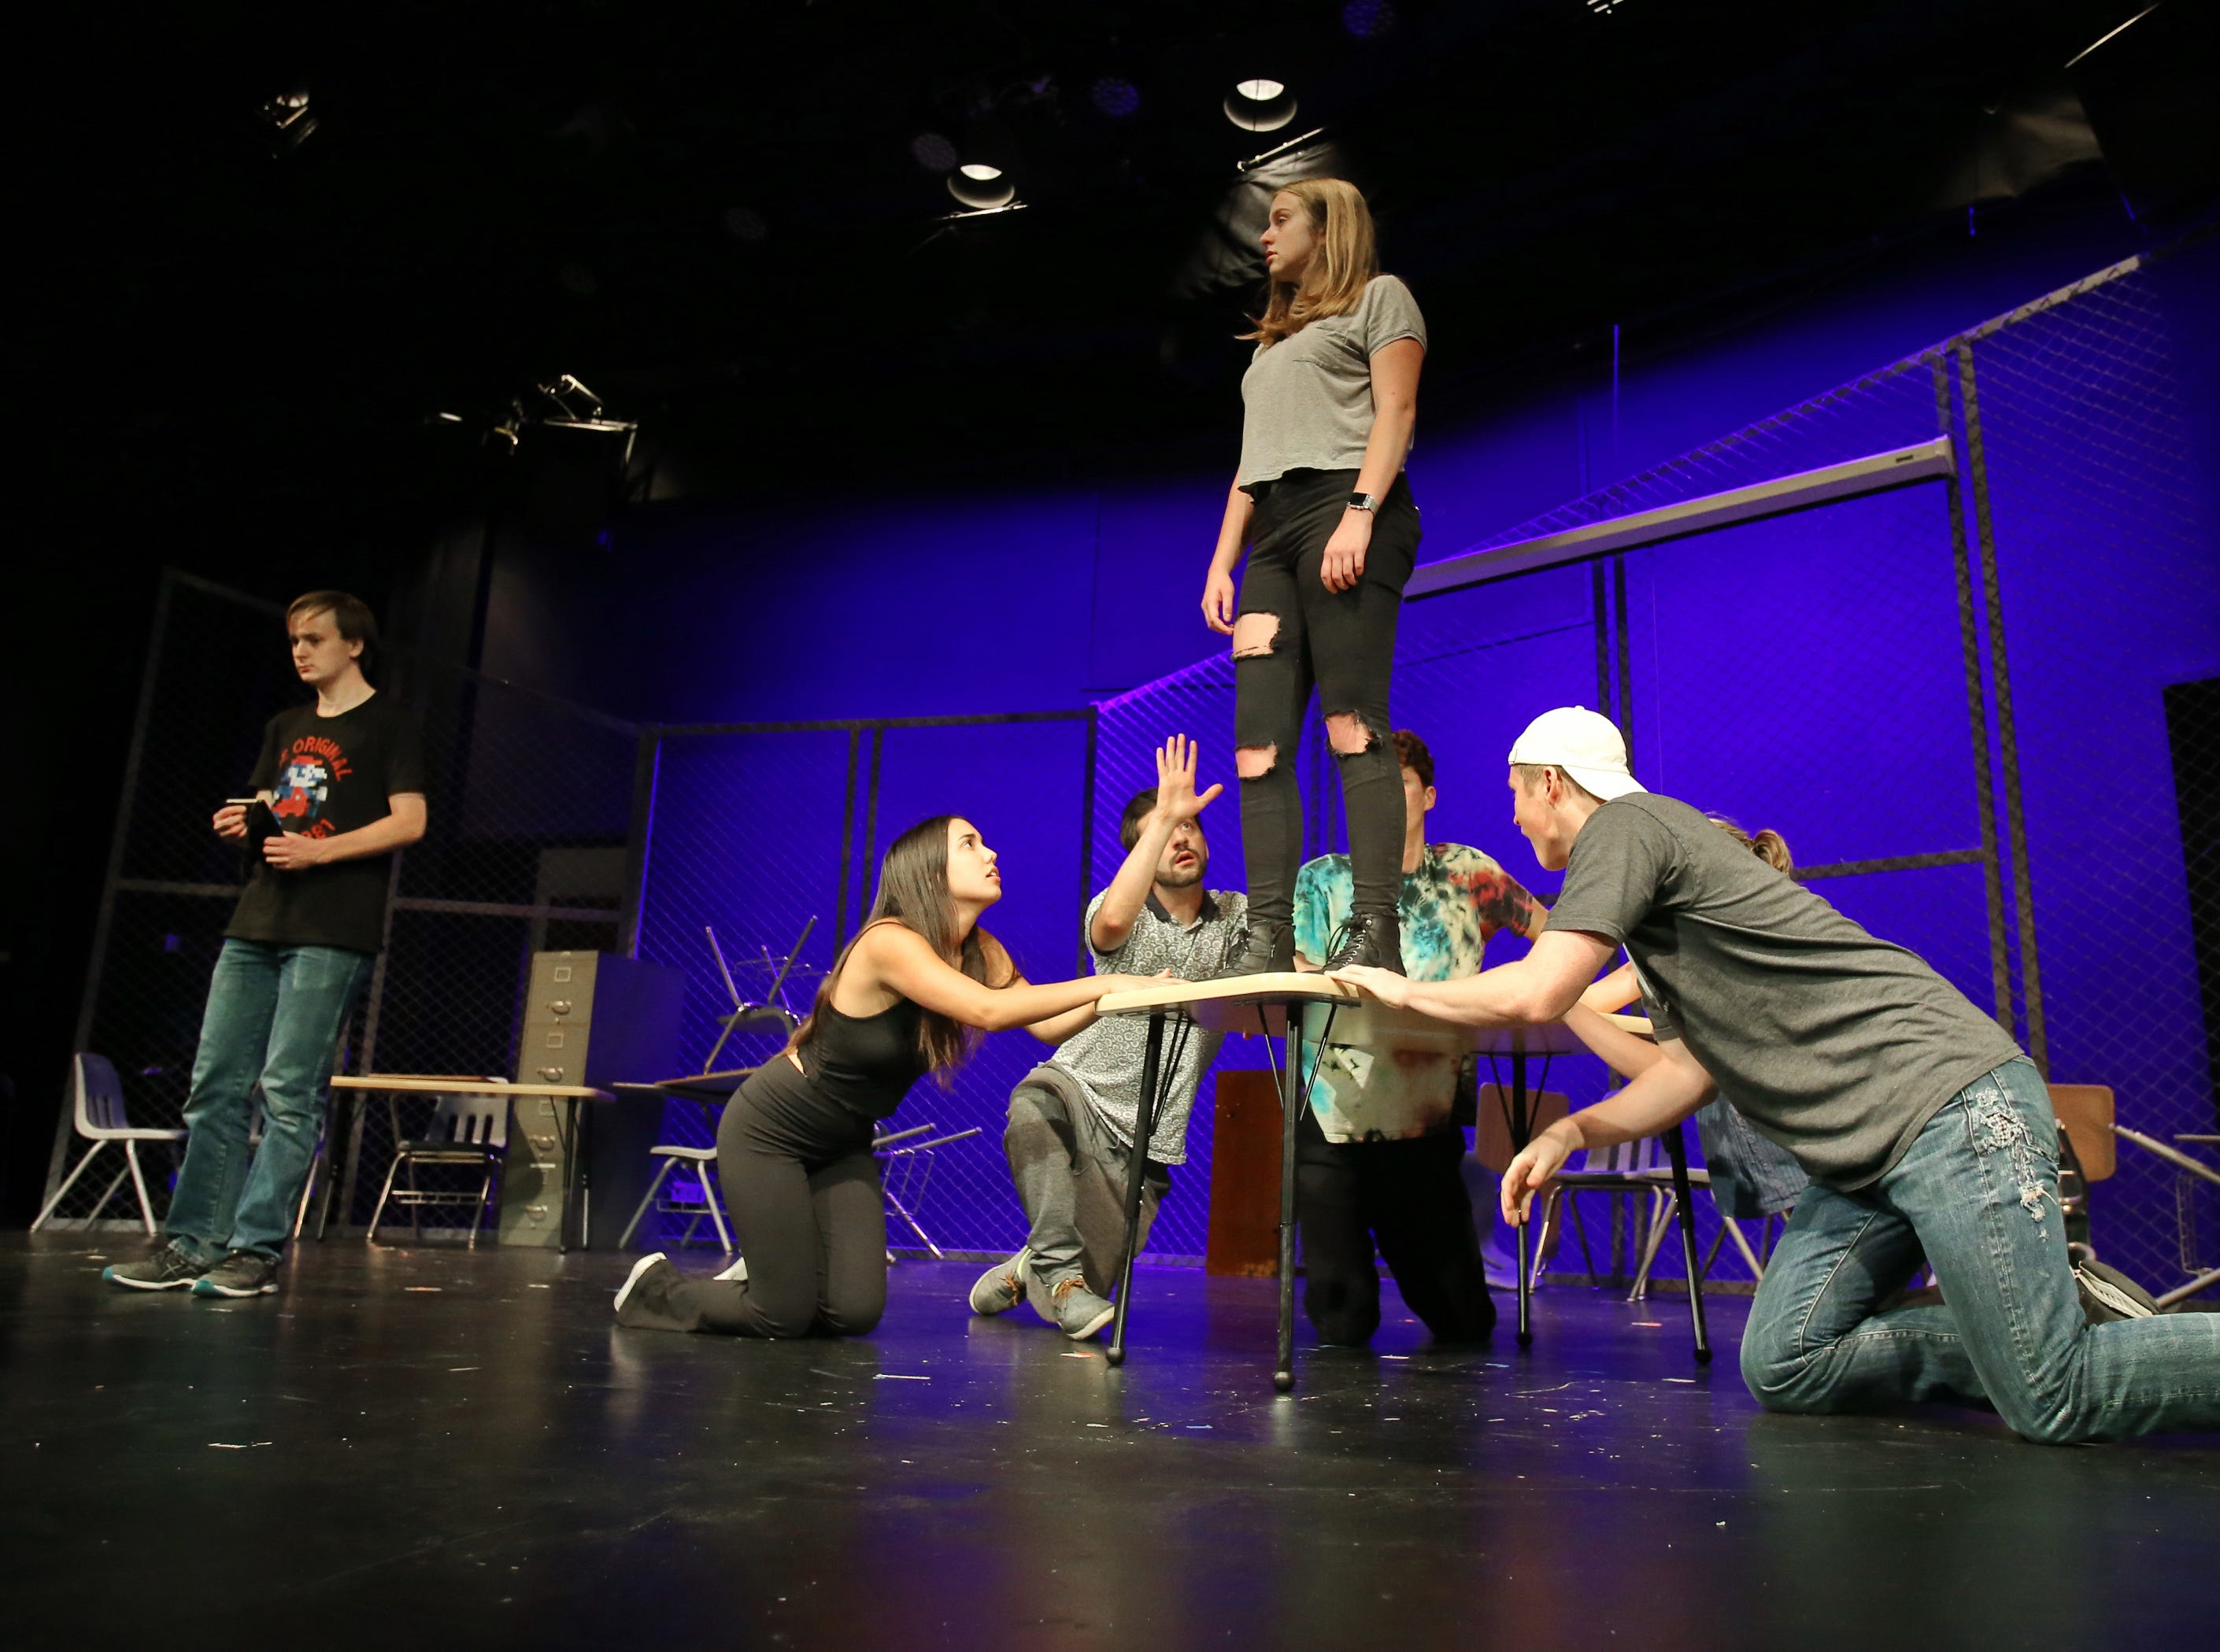 """California Lutheran University drama students Jacob White (left) and Gabrielle Reublin perform one of the scenes in Act 1 with fellow cast members in their production of """"Columbinus."""" The play is based on the 1999 shooting at Columbine High School in Littleton, Colorado, and those involved hope it focuses new attention on the troubling rise in the number of school shootings."""